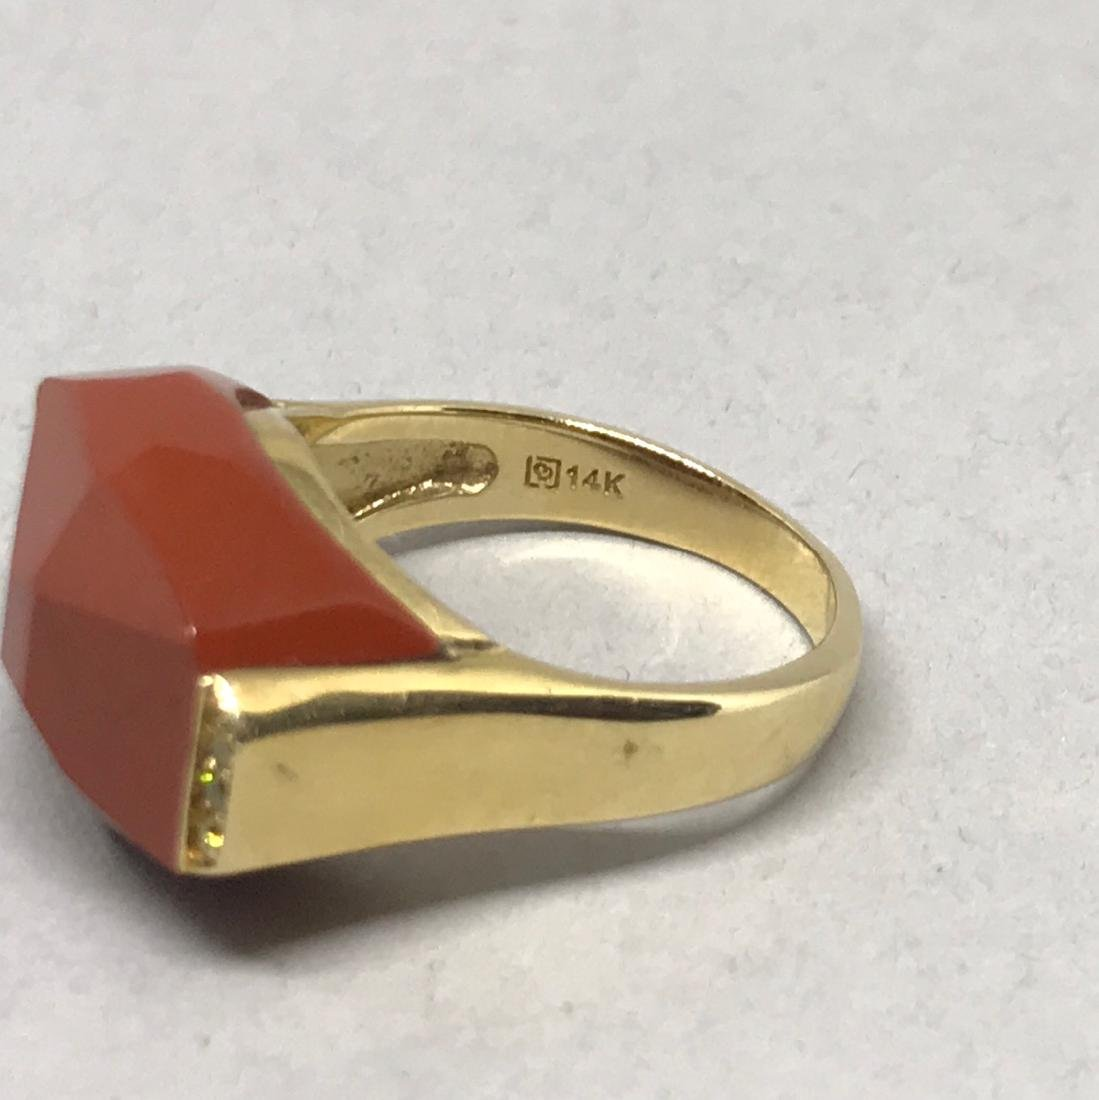 14Kt Gold Ring with Jasper & Diamonds - 4